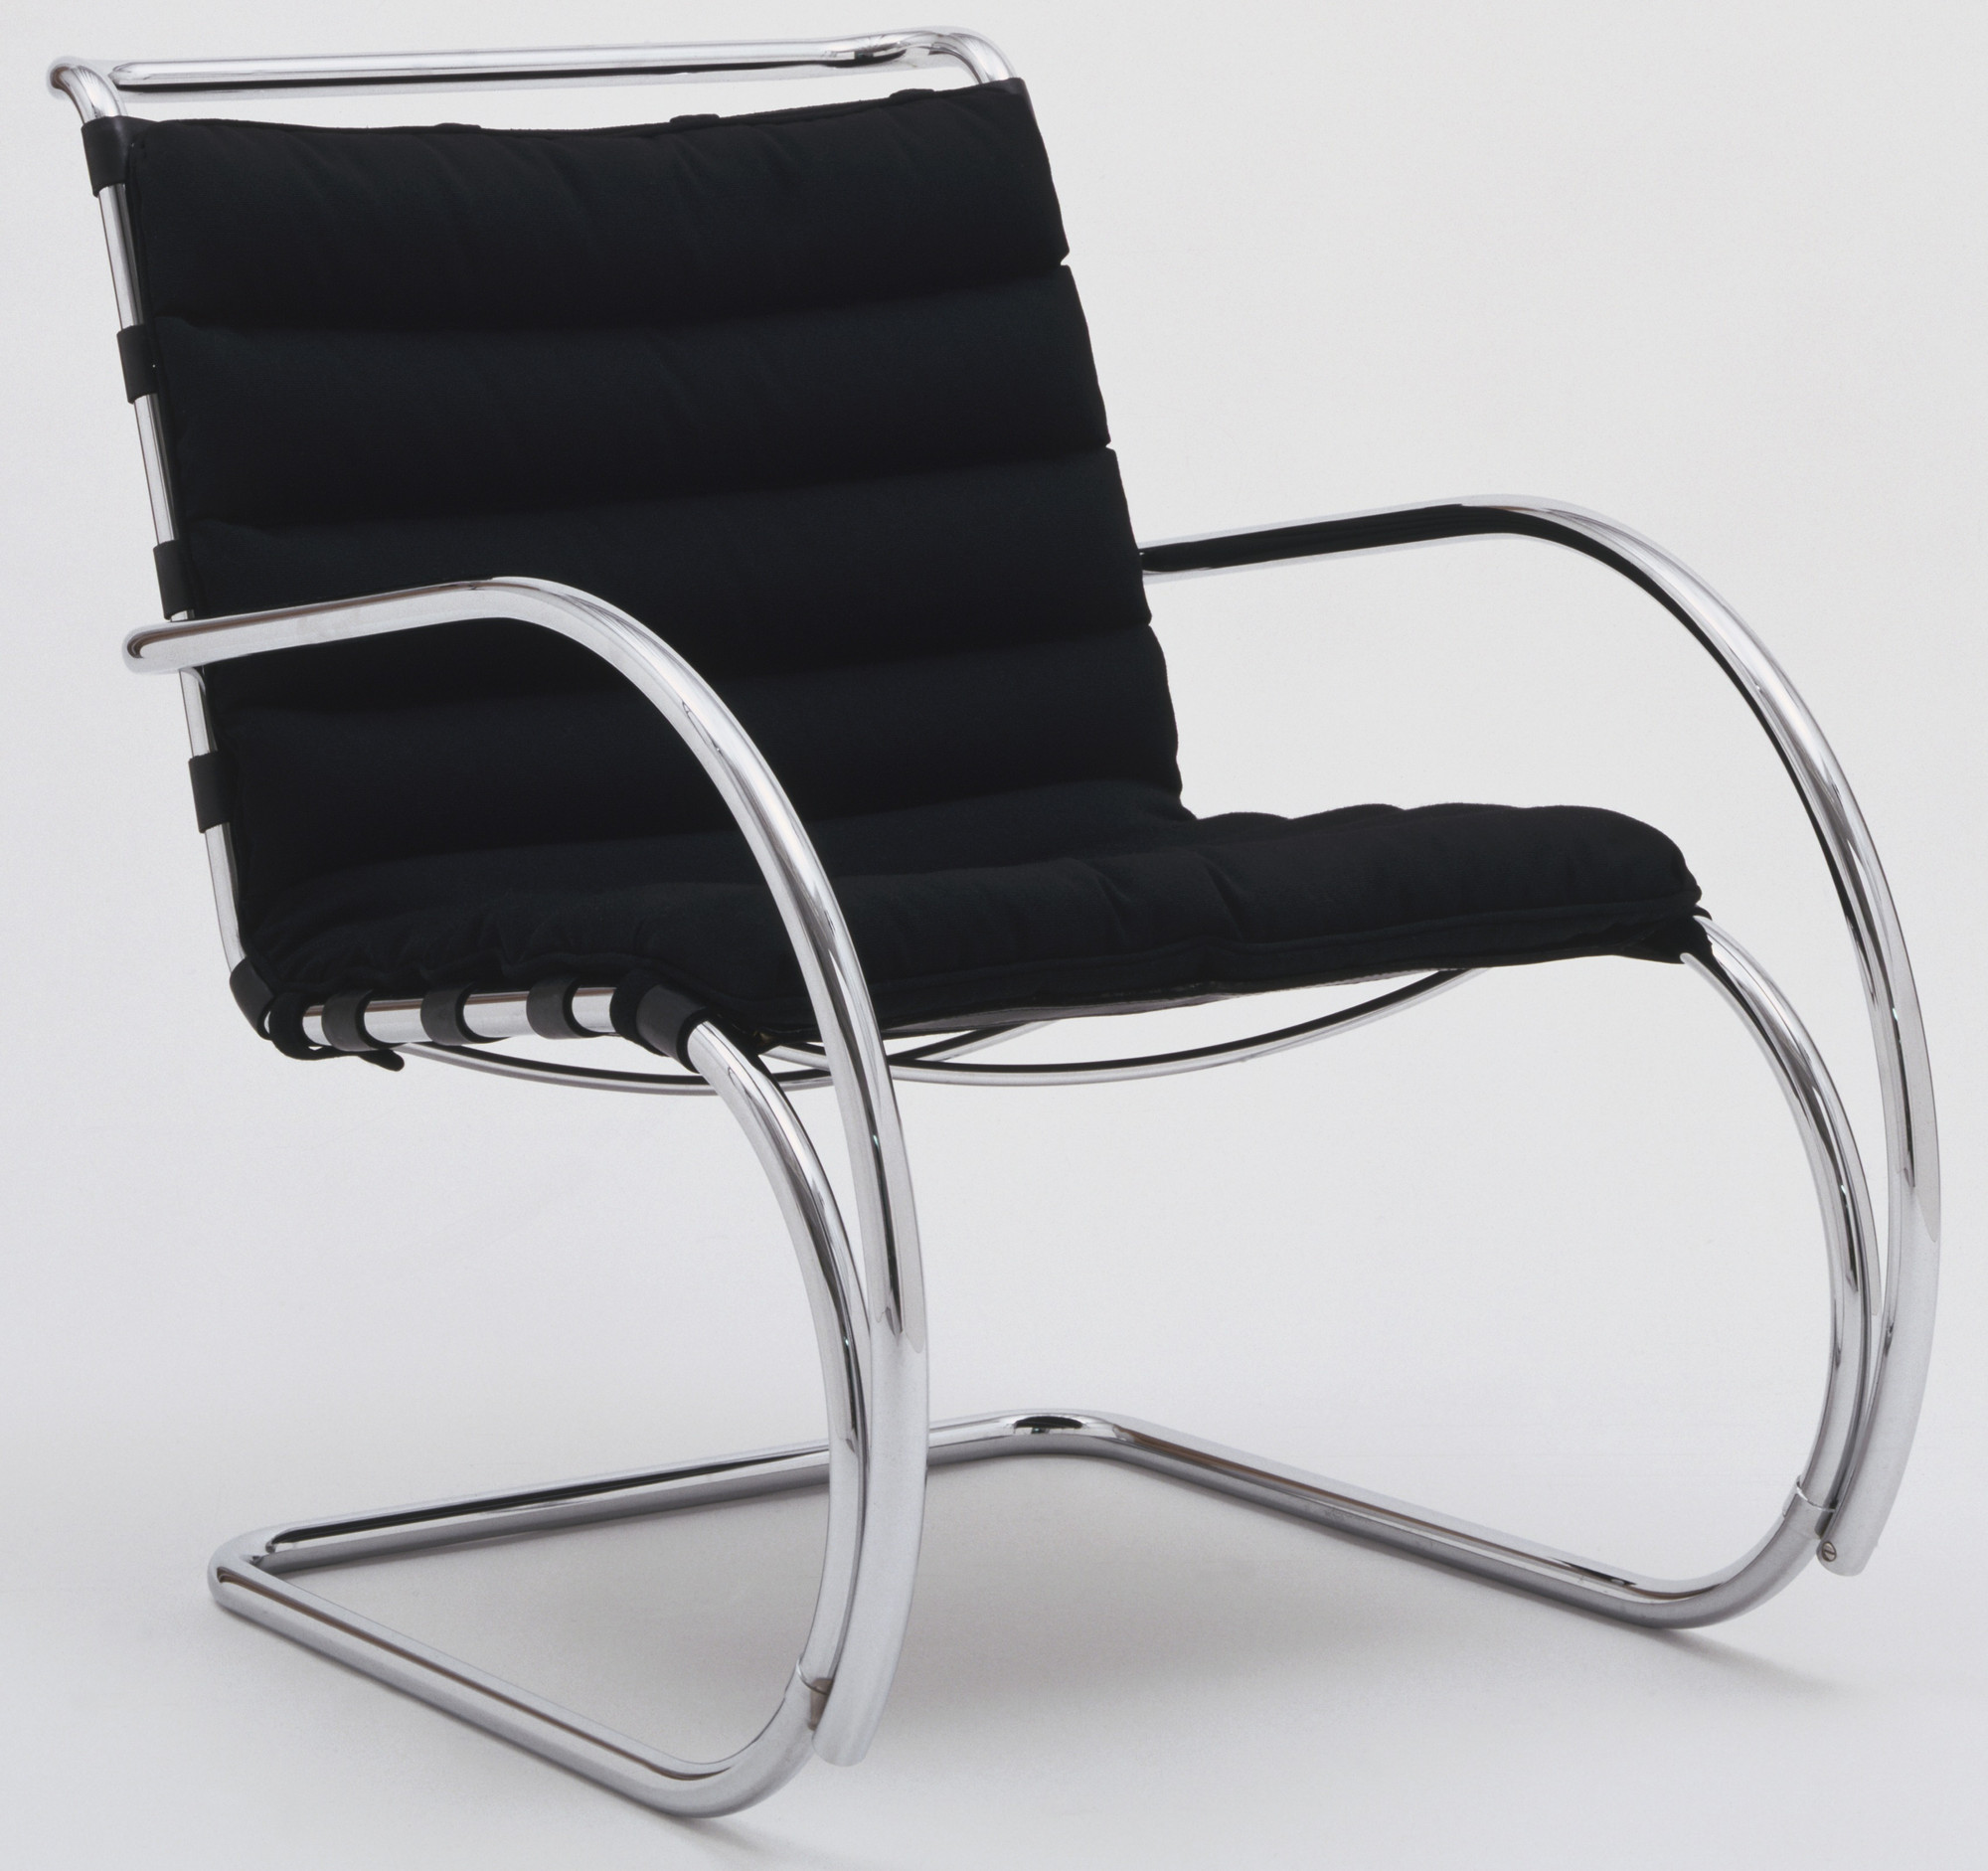 Awesome Ludwig Mies Van Der Rohe Mr Lounge Chair Model 44 Squirreltailoven Fun Painted Chair Ideas Images Squirreltailovenorg